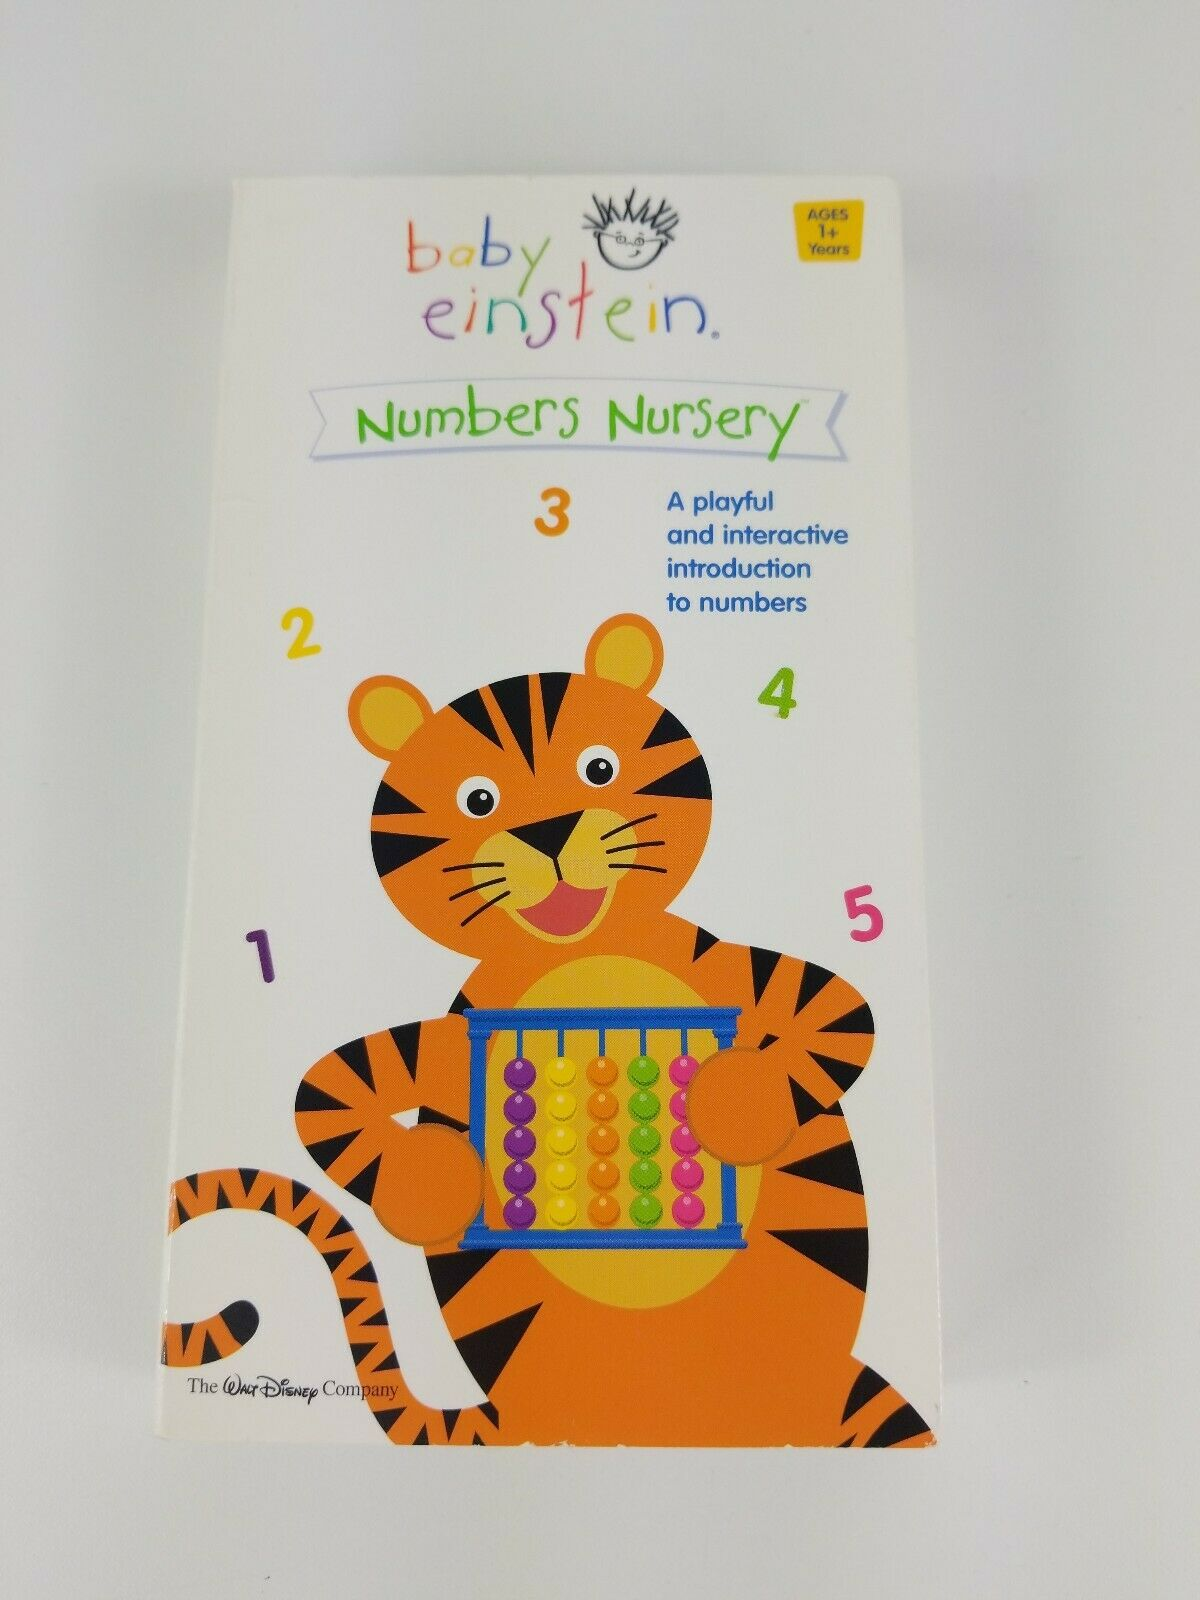 Baby Einstein: Numbers Nursery (2003-2004 VHS)